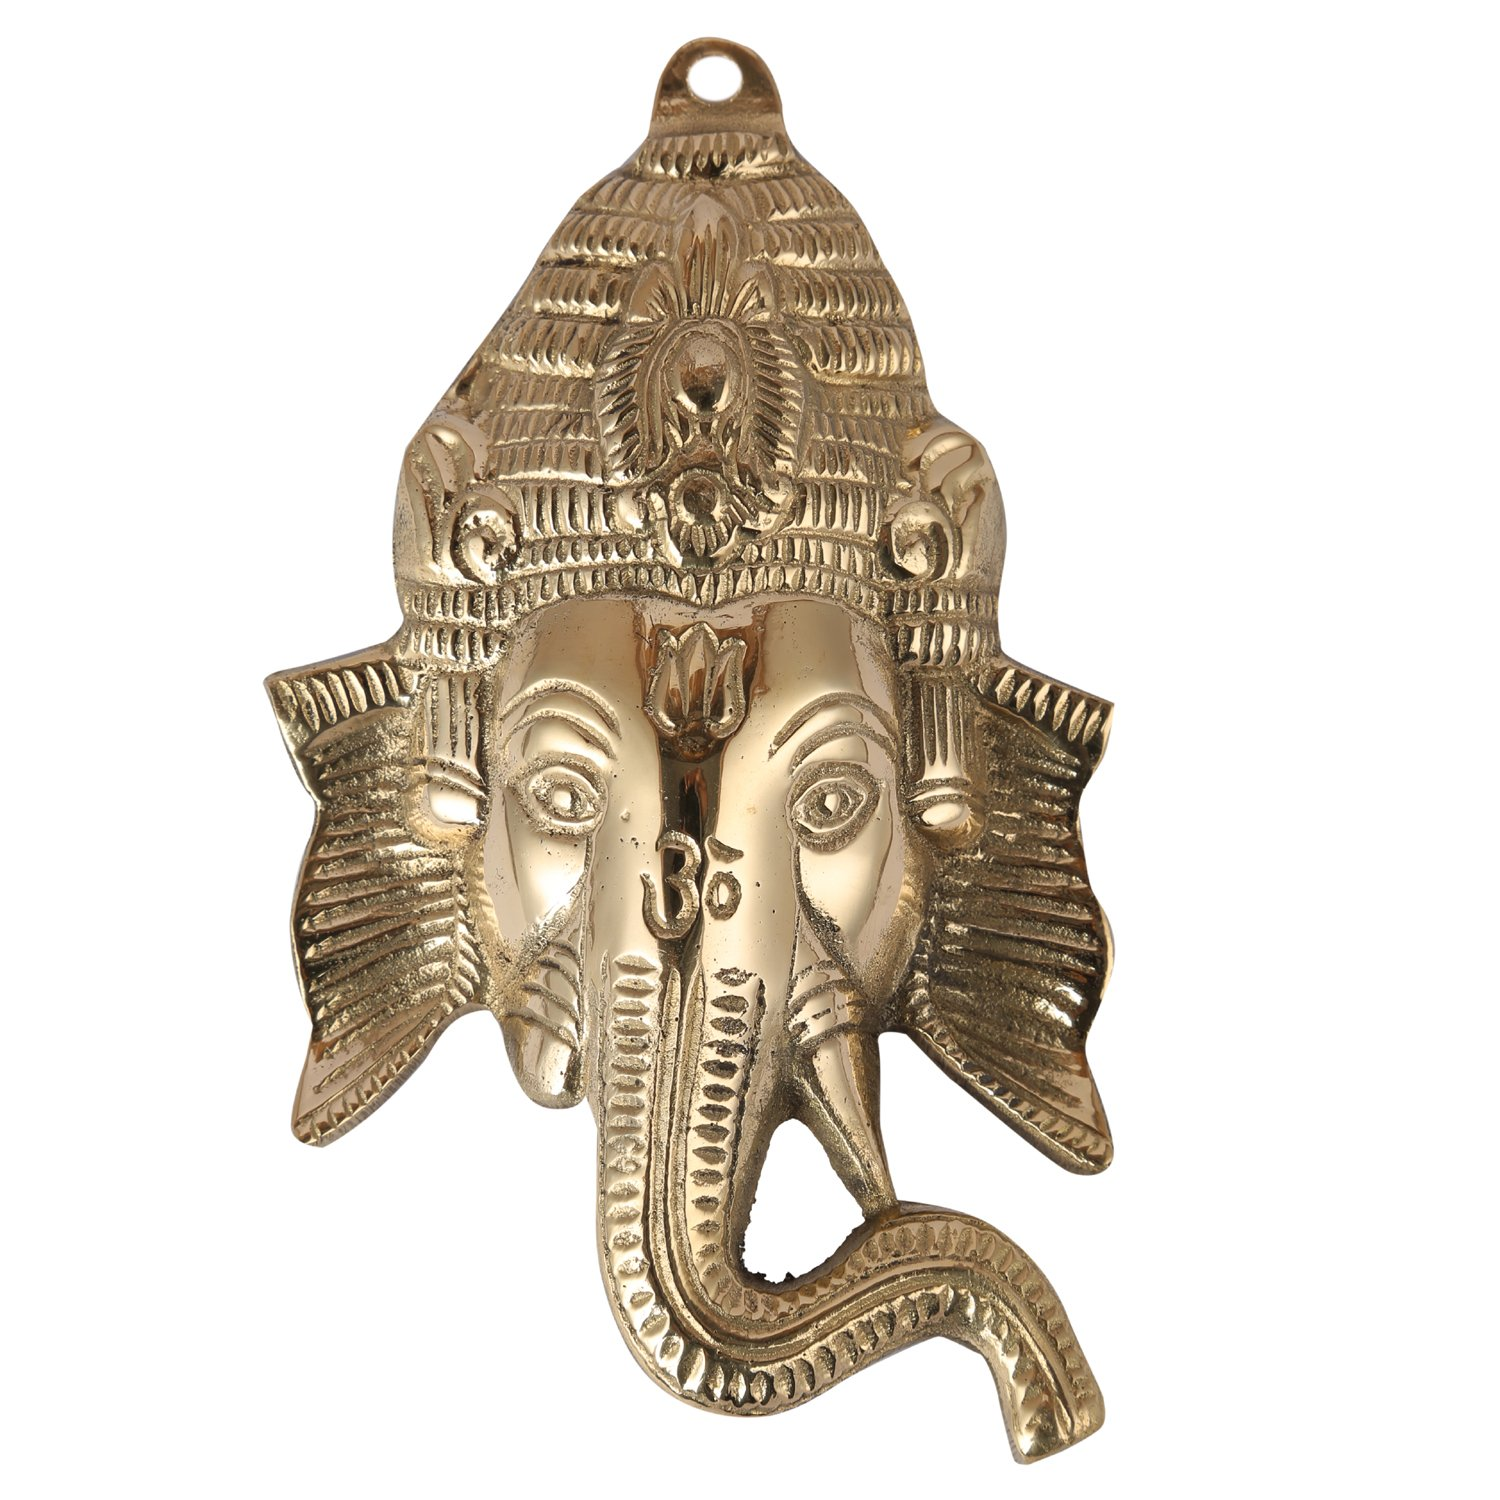 Aatm Decorative & Attractive Brass Figurine Statue Handicraft in Shape of Ganesh Face ||Best Use for Home Decoration/Gifting/ Office||